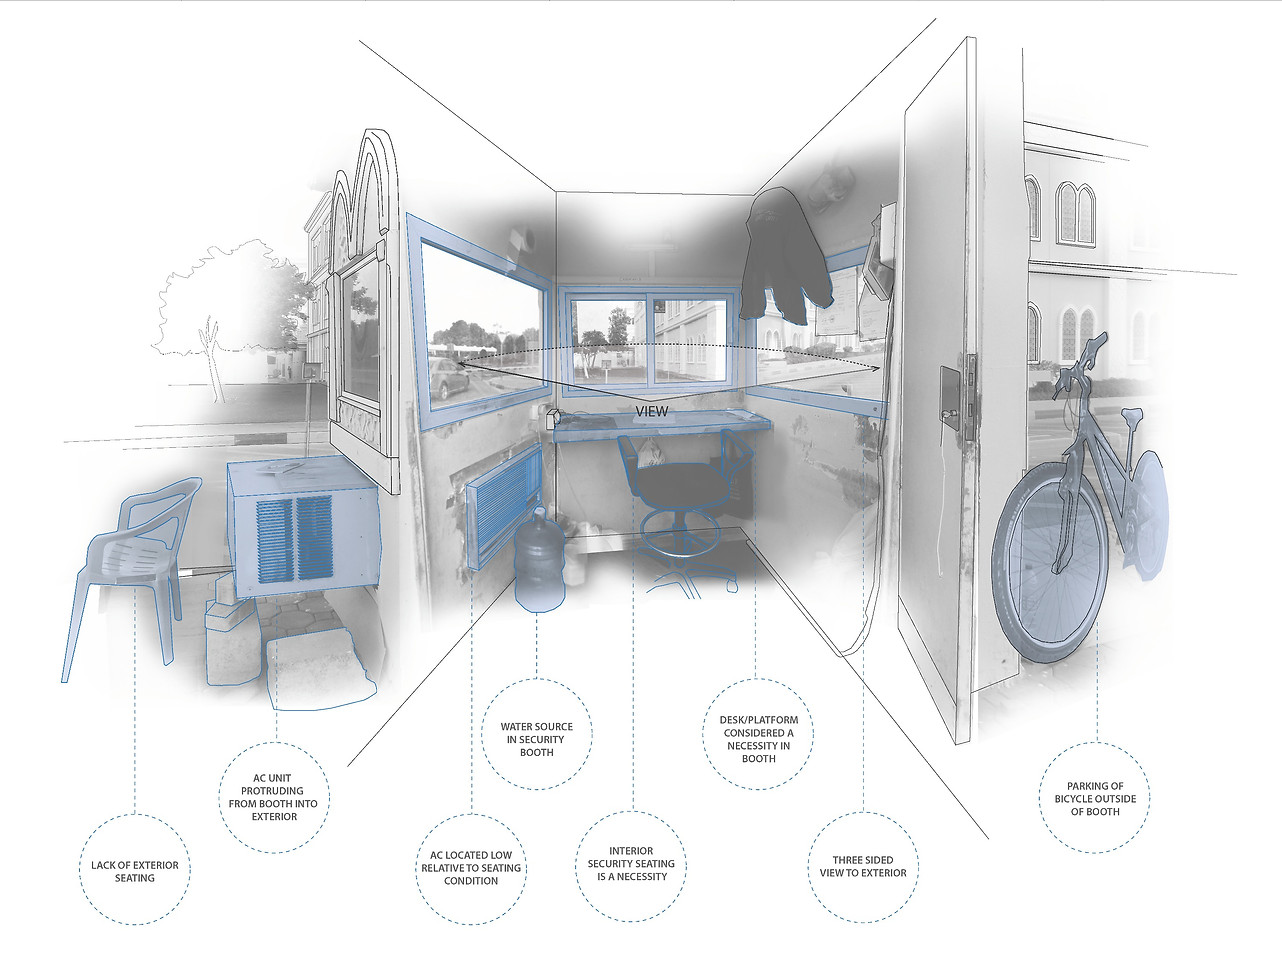 Diagram of Existing Booth